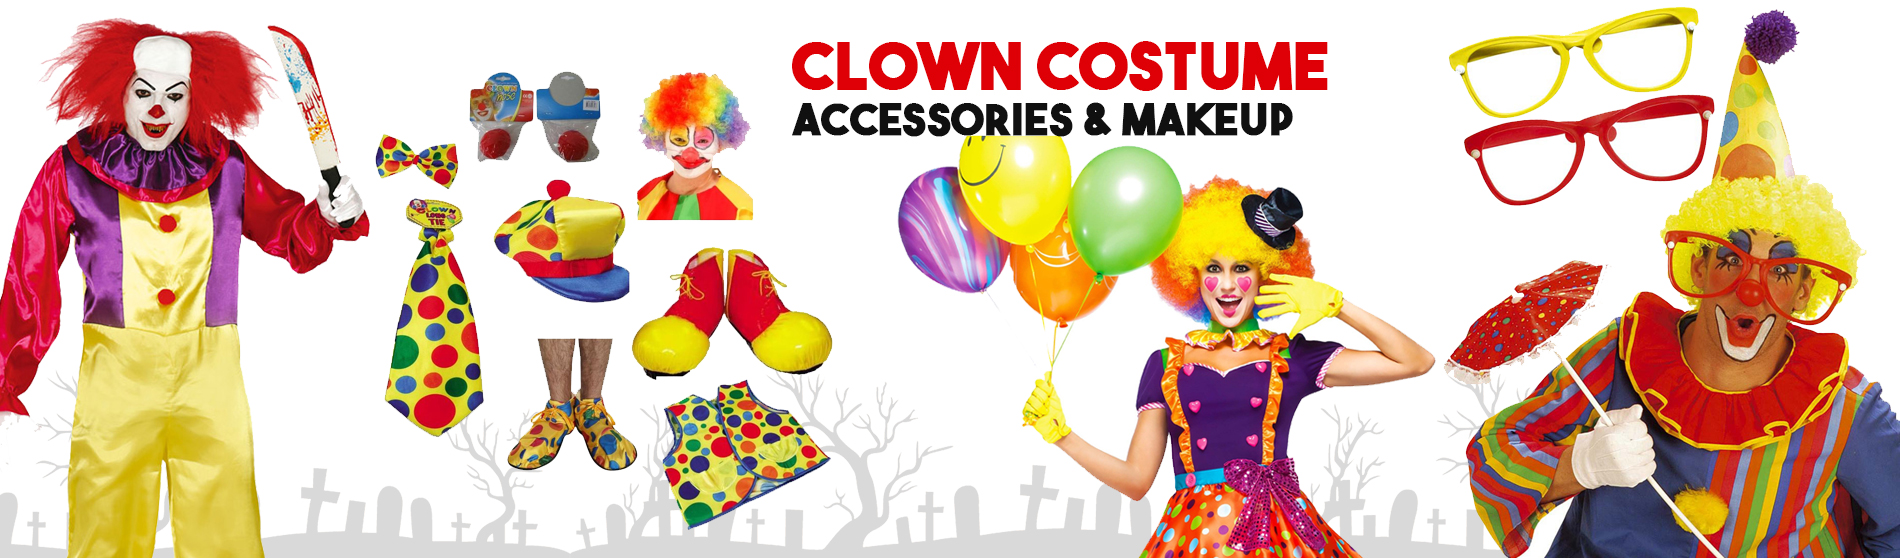 Clown-Costume-Accessories-Makeup